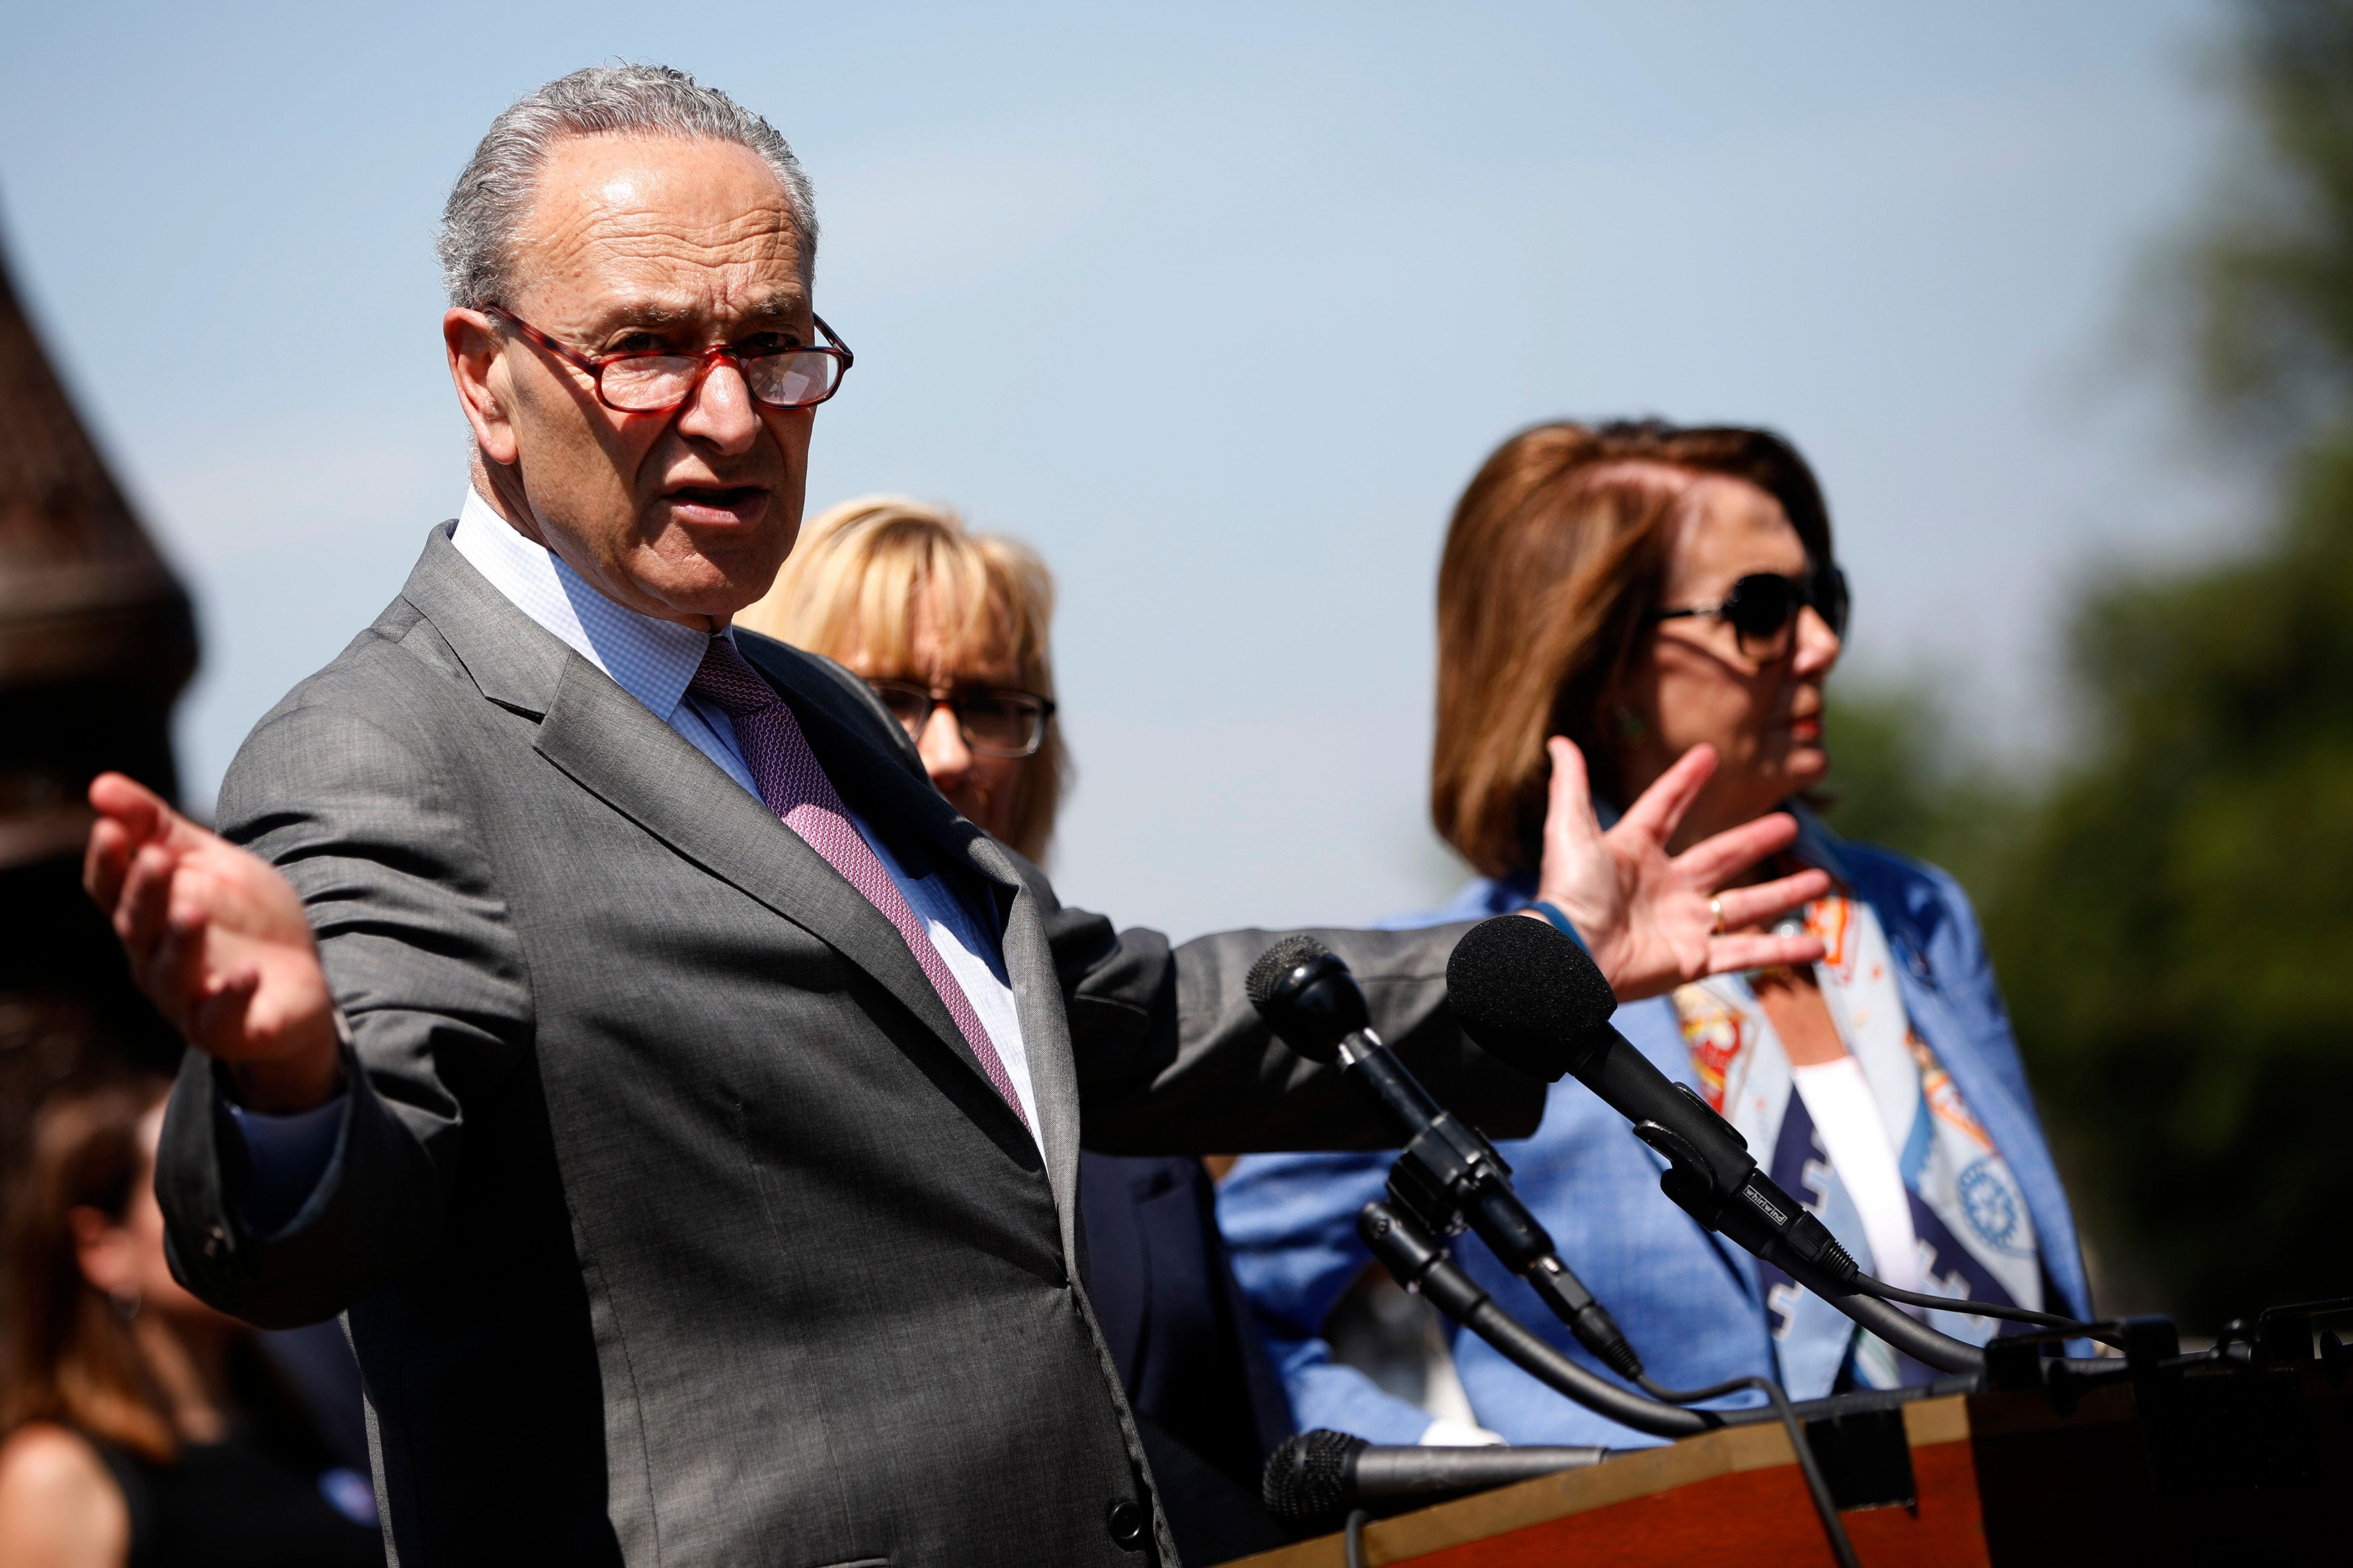 WASHINGTON, DC - JUNE 26: Senate Minority Leader Chuck Schumer (D-NY) alongside House Minority Leader Nancy Pelosi (D-CA) speaks with reporters outside the U.S. Capitol June 26, 2018 in Washington, DC. Democrats are calling on the administration to change its policy regarding the pre-existing conditions provisions of the Affordable Care Act. (Photo by Aaron P. Bernstein/Getty Images)